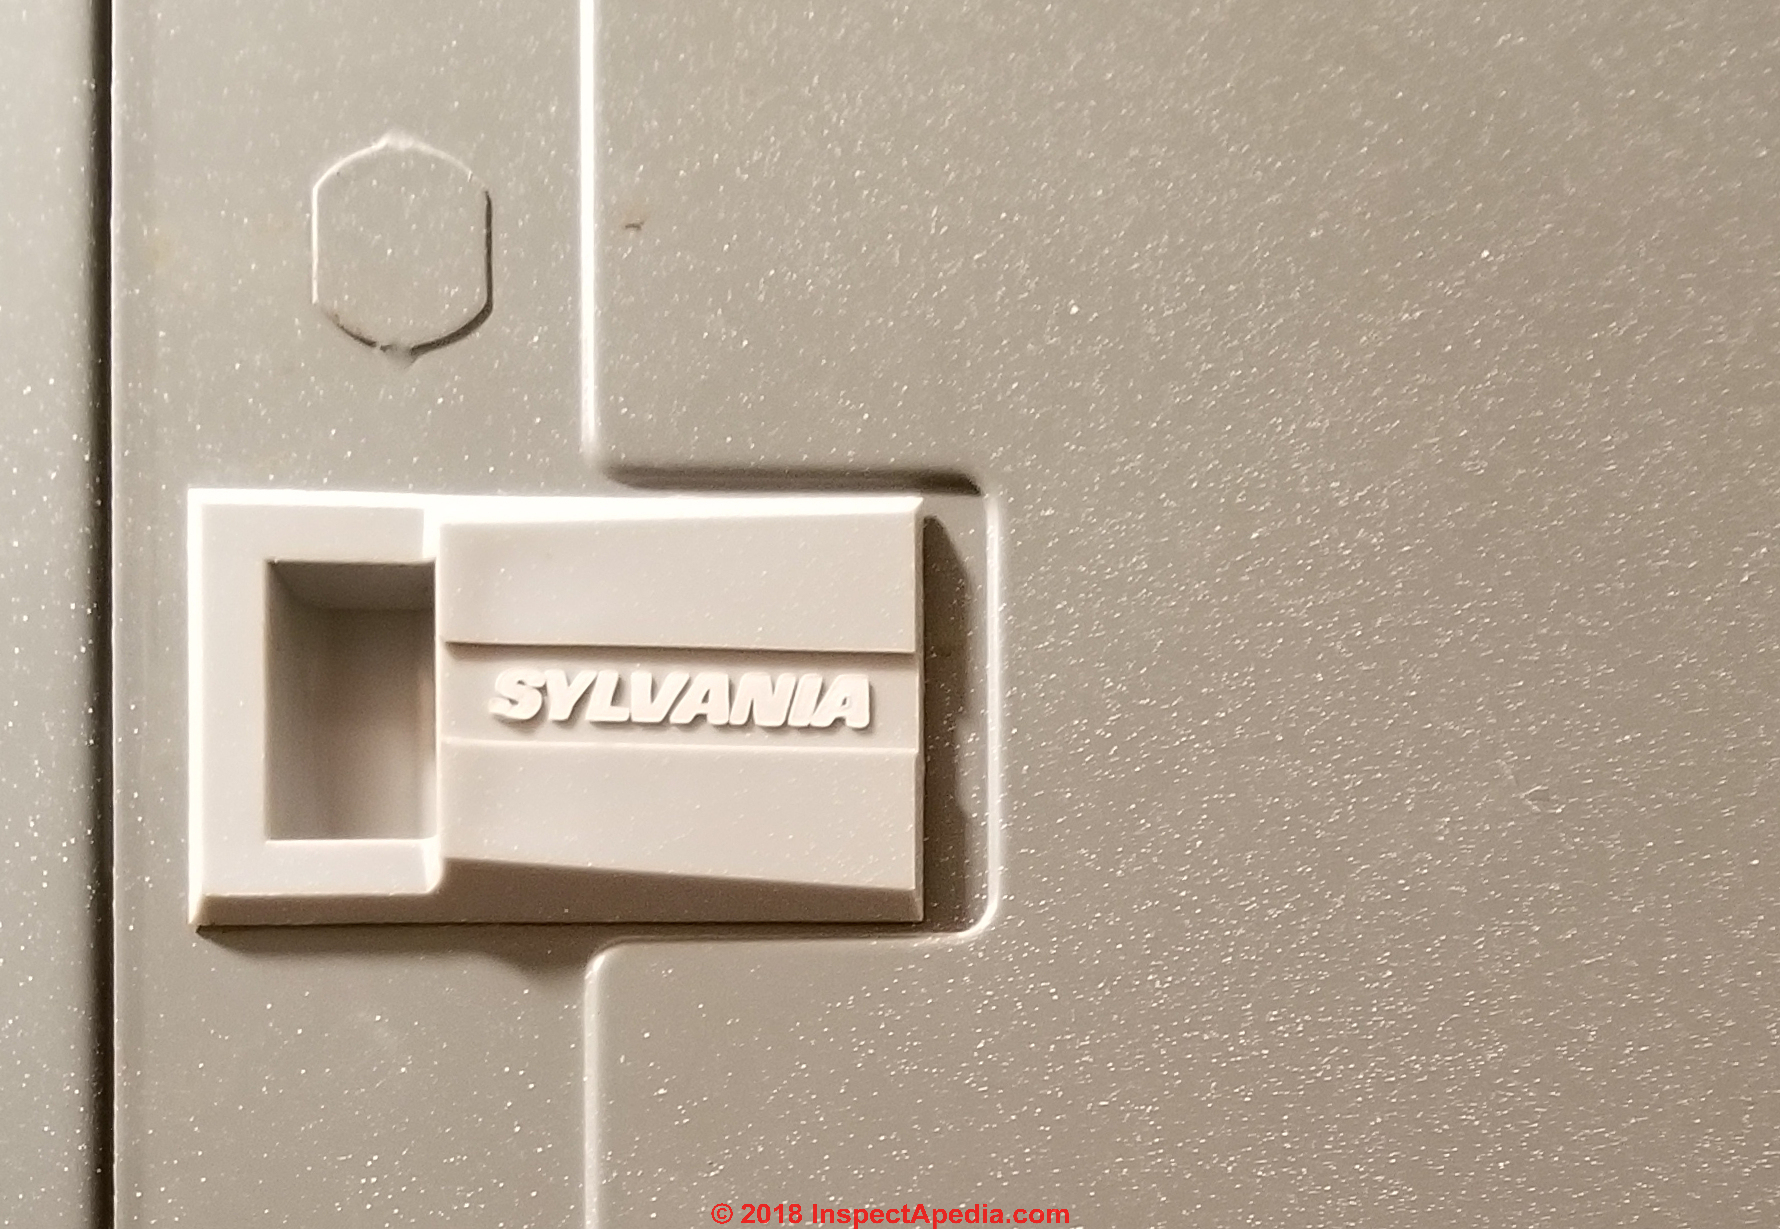 Sylvania Electrical Panel 383 IAP Roses sylvania electric heater wiring diagram free download \u2022 oasis dl co